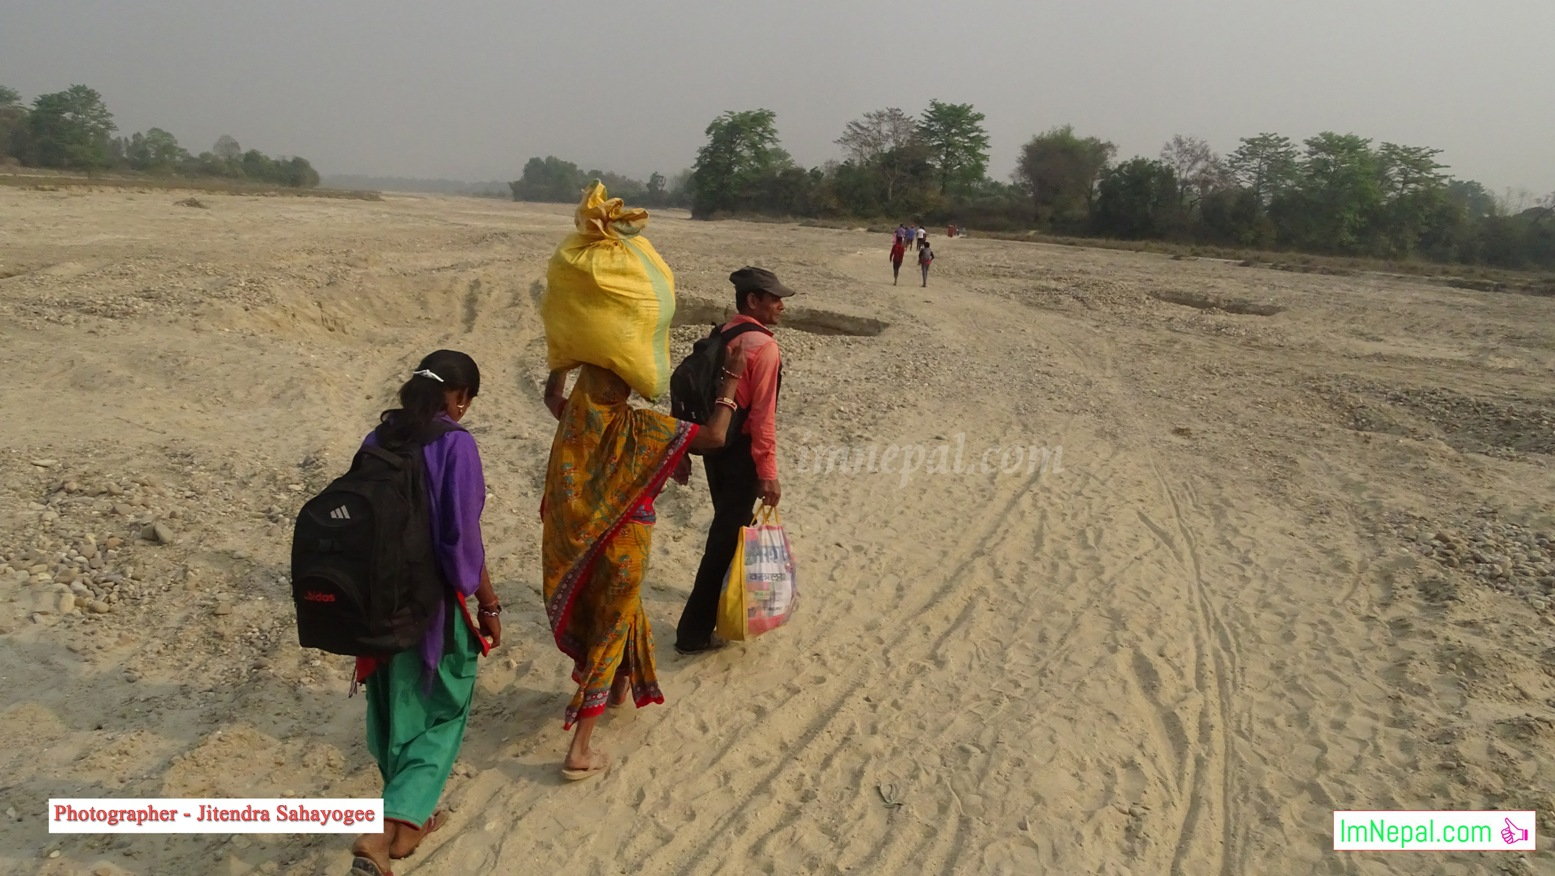 Madheshi Nepali People Walking Pictures Carrying Bags